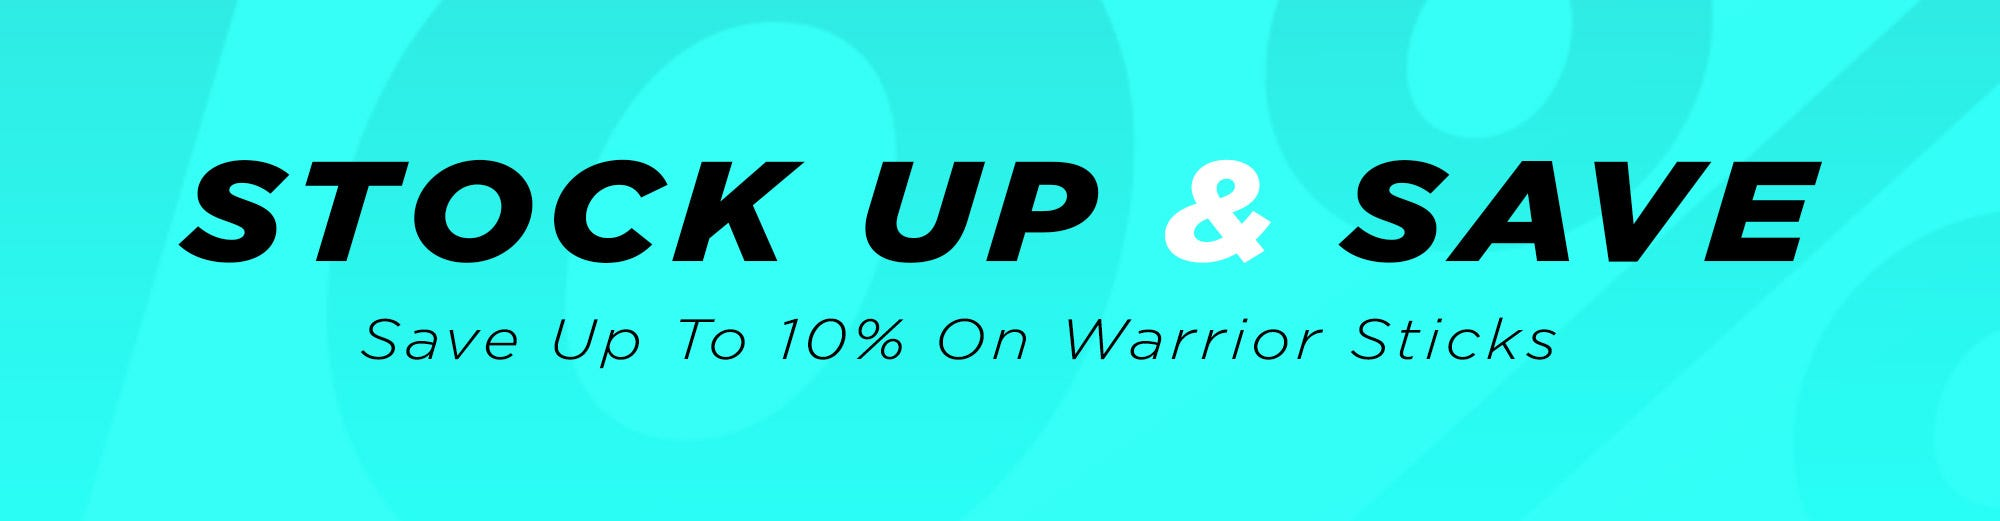 Warrior Hockey Sticks - Stock Up & Save When You Purchase 2 or More!